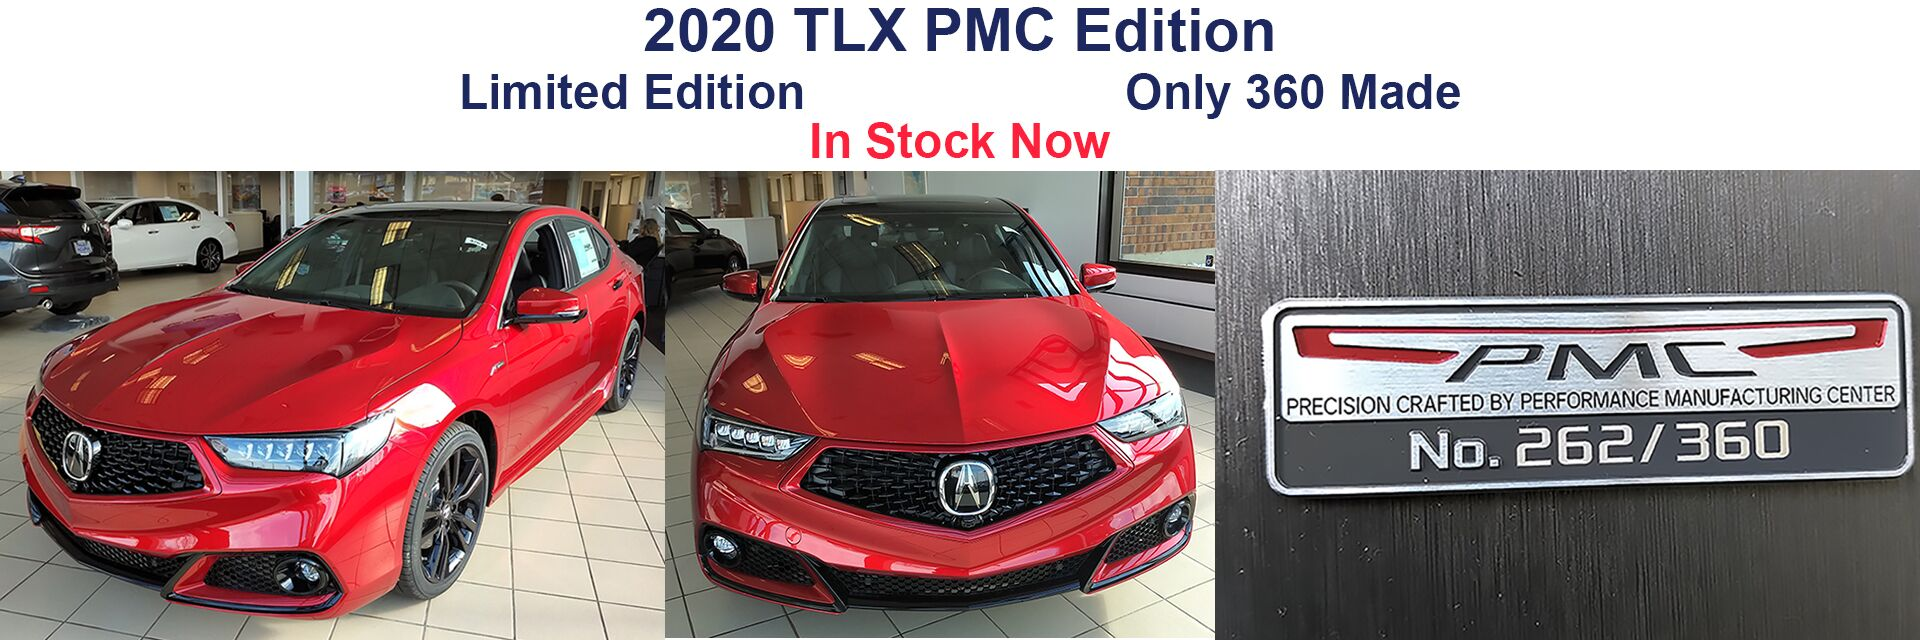 2020 TLX PMC Edition